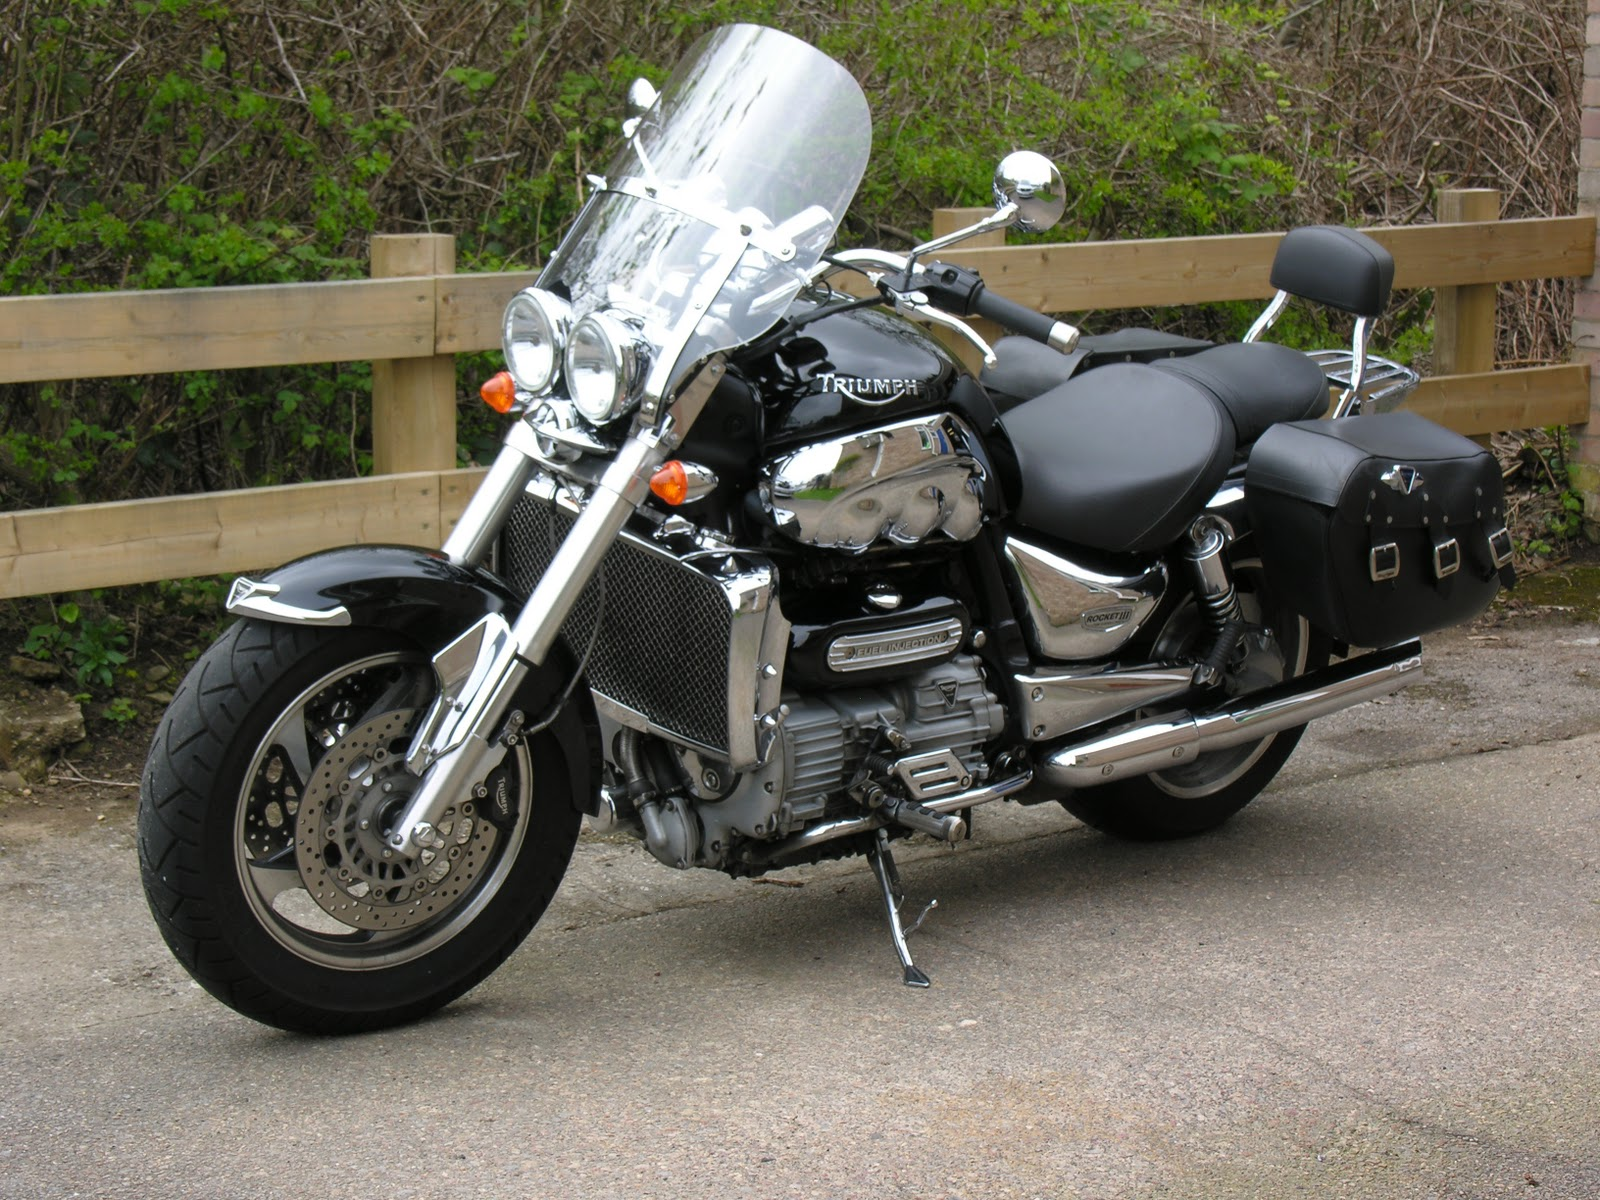 triumph rocket iii motorcycle - photo #28